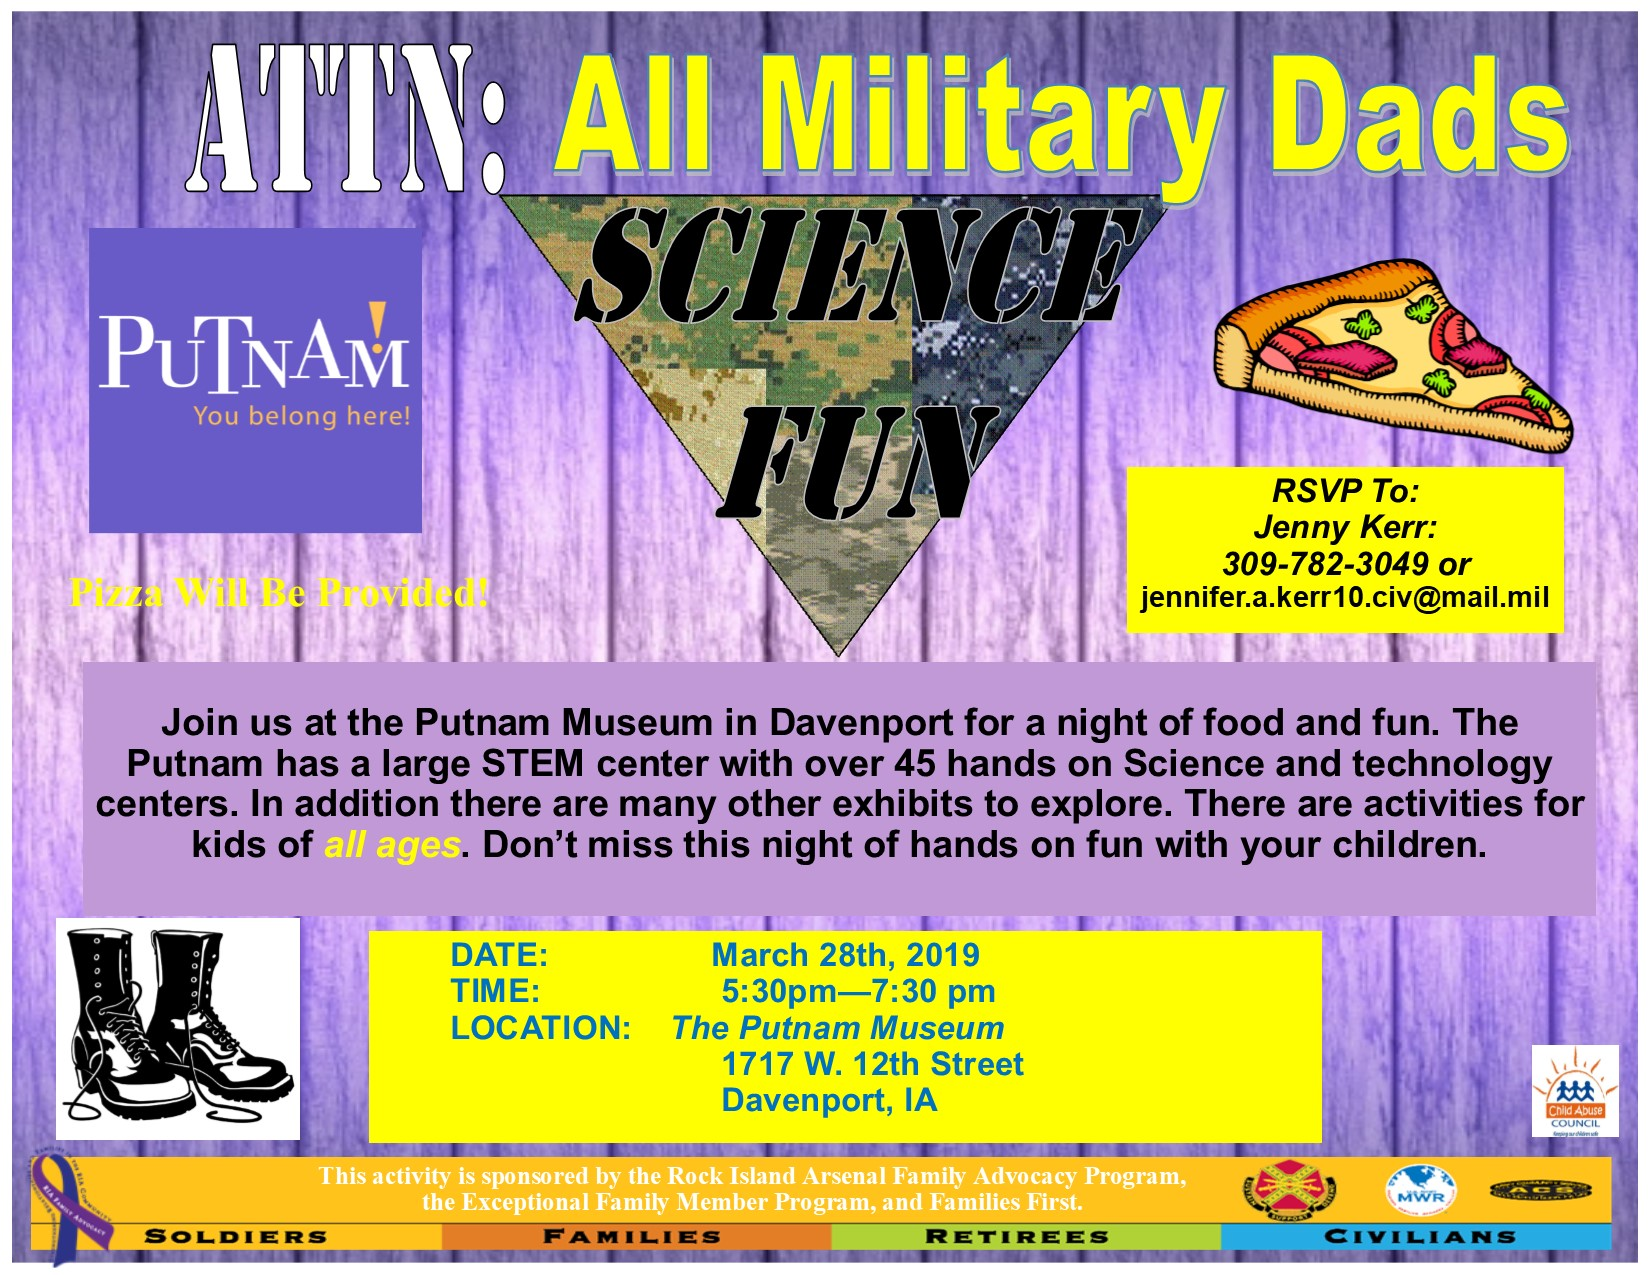 Military Fatherhood Program